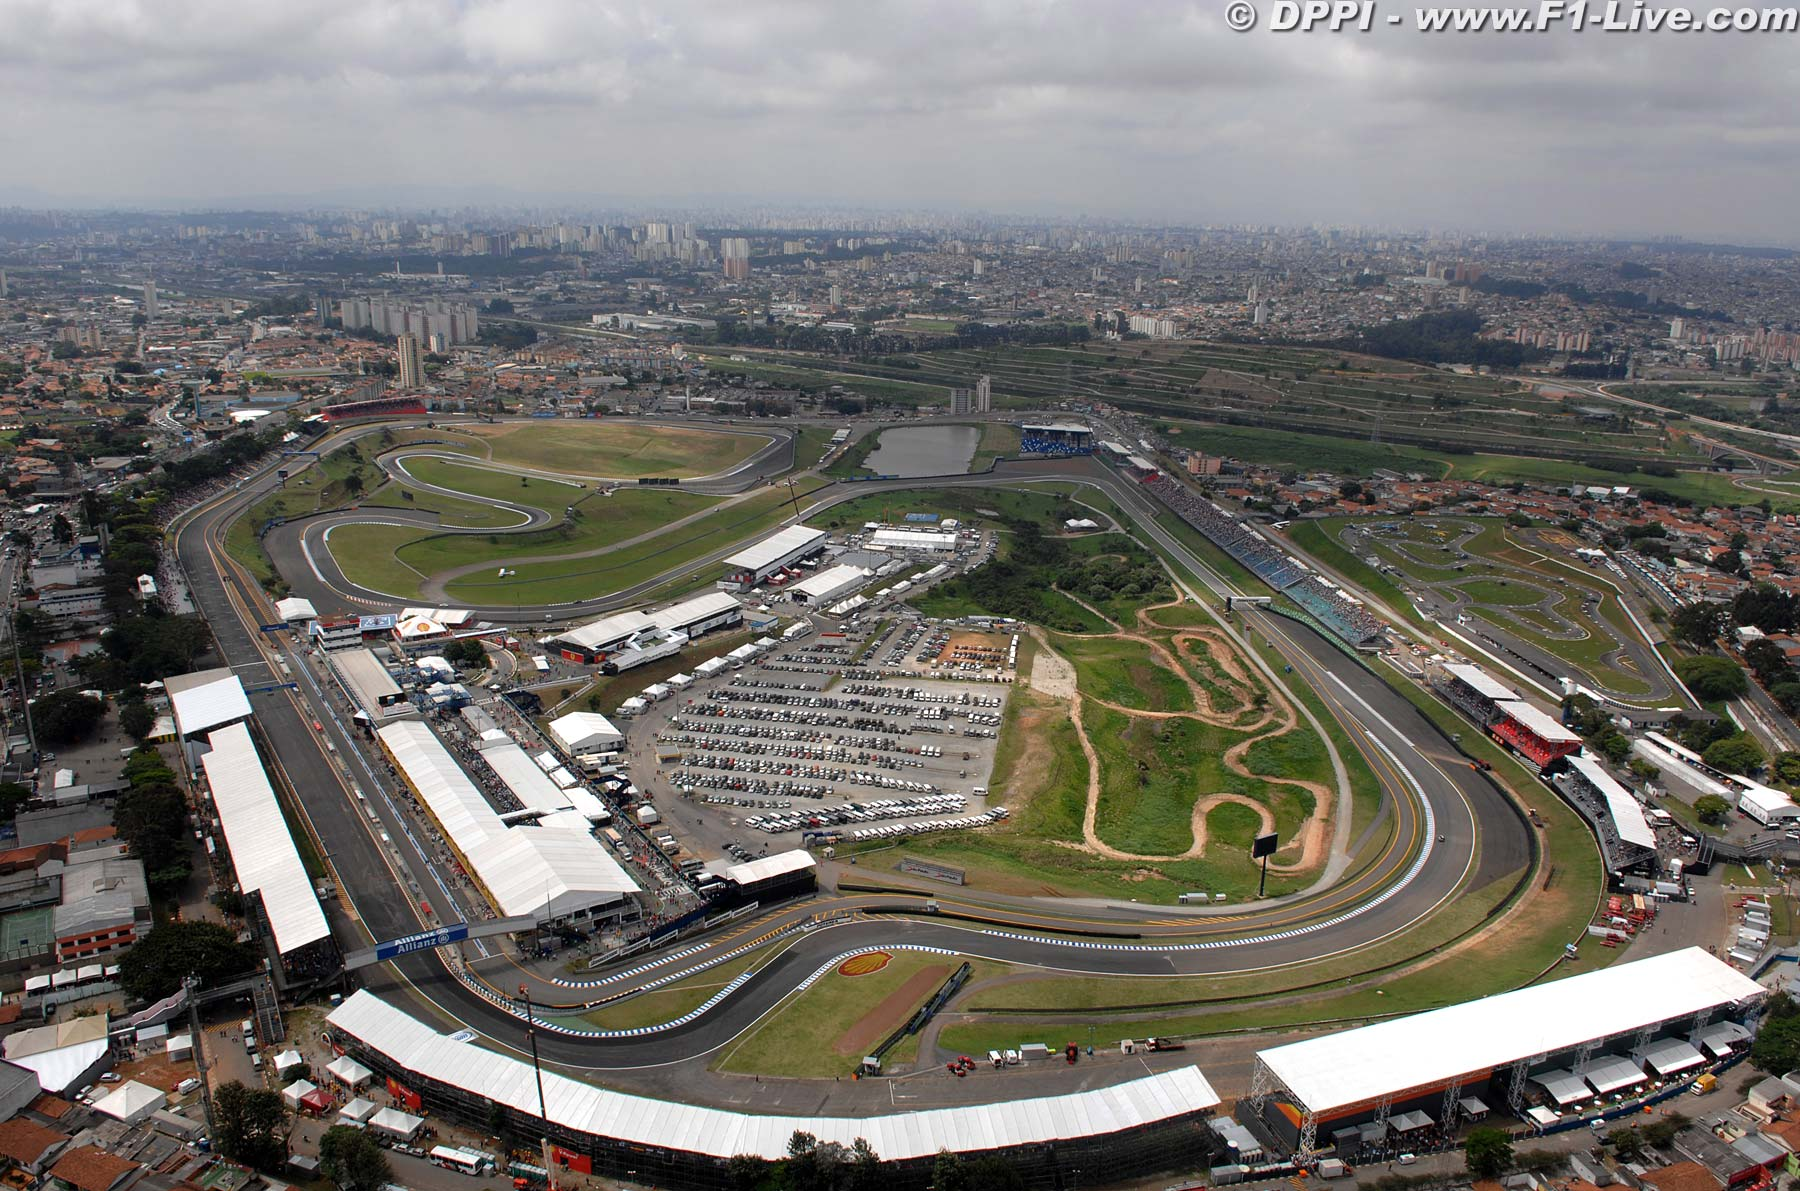 Circuit Interlagos : Interlagos racing circuit i took this photo in a summer day a few